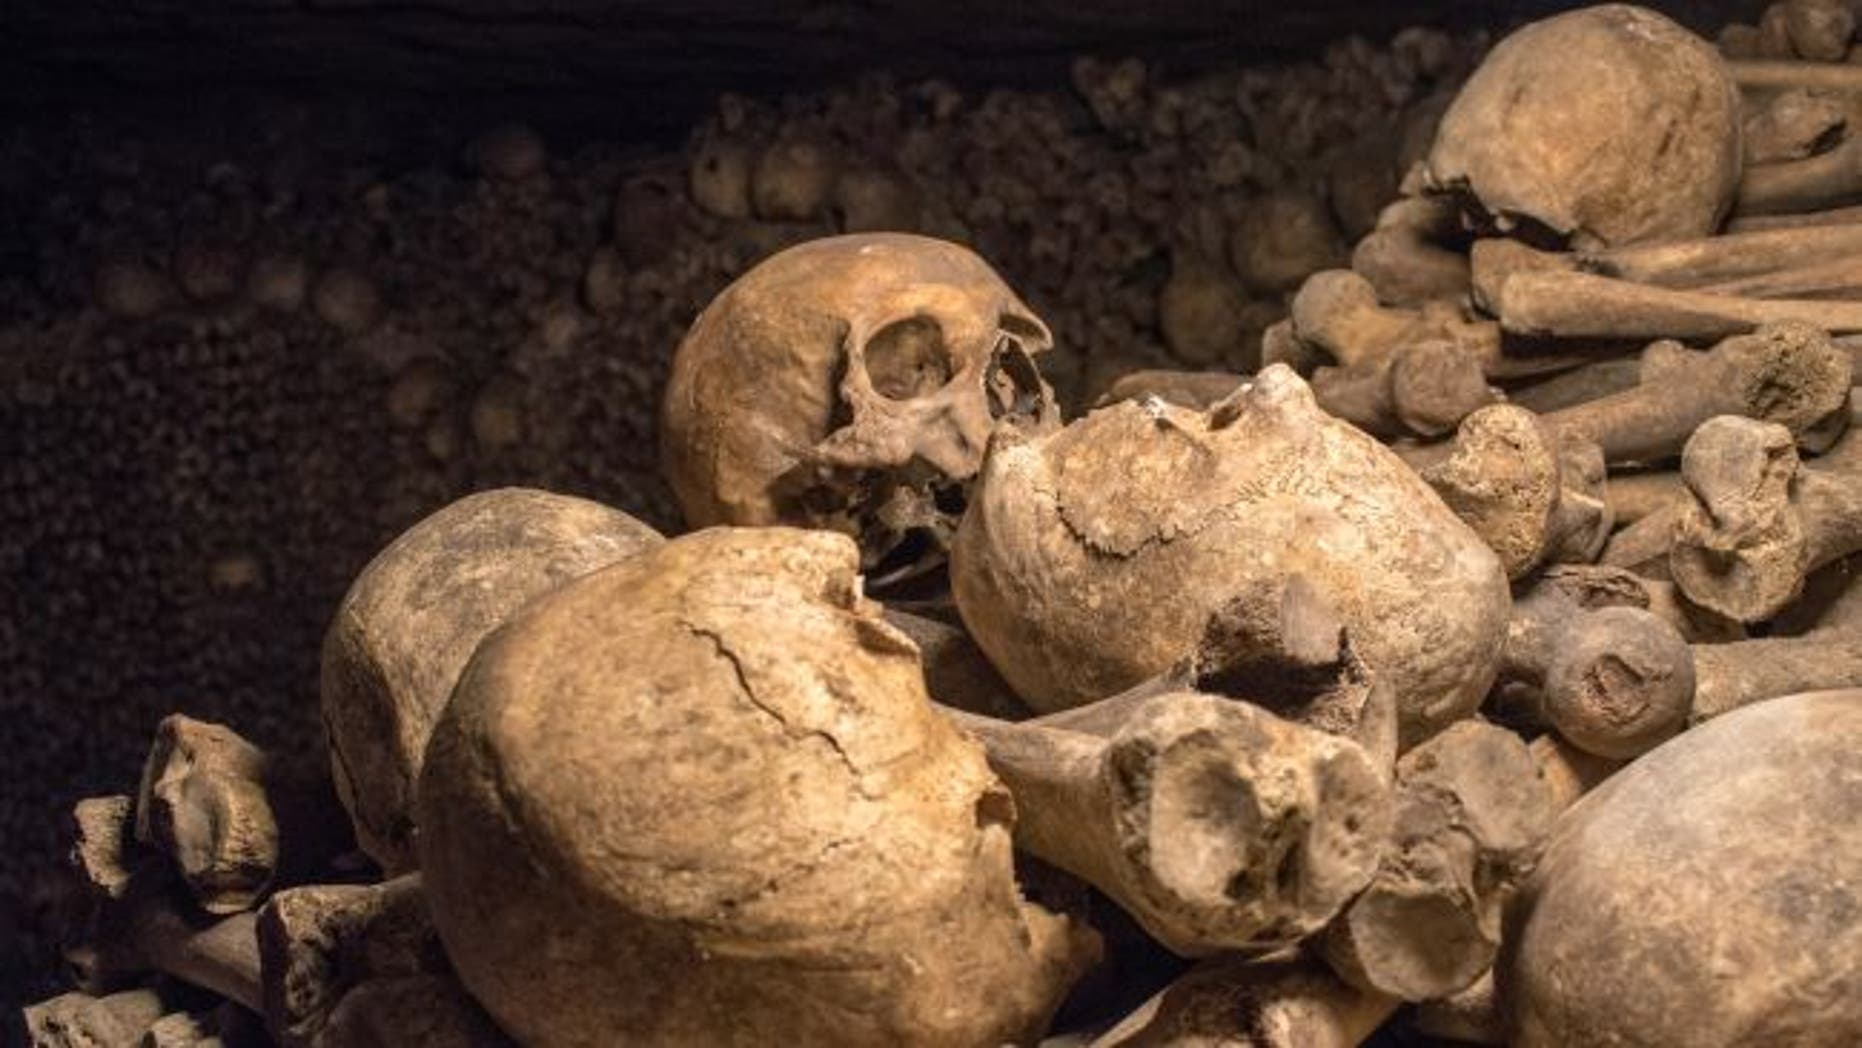 Looted skulls and human remains are being sold in black markets on Facebook